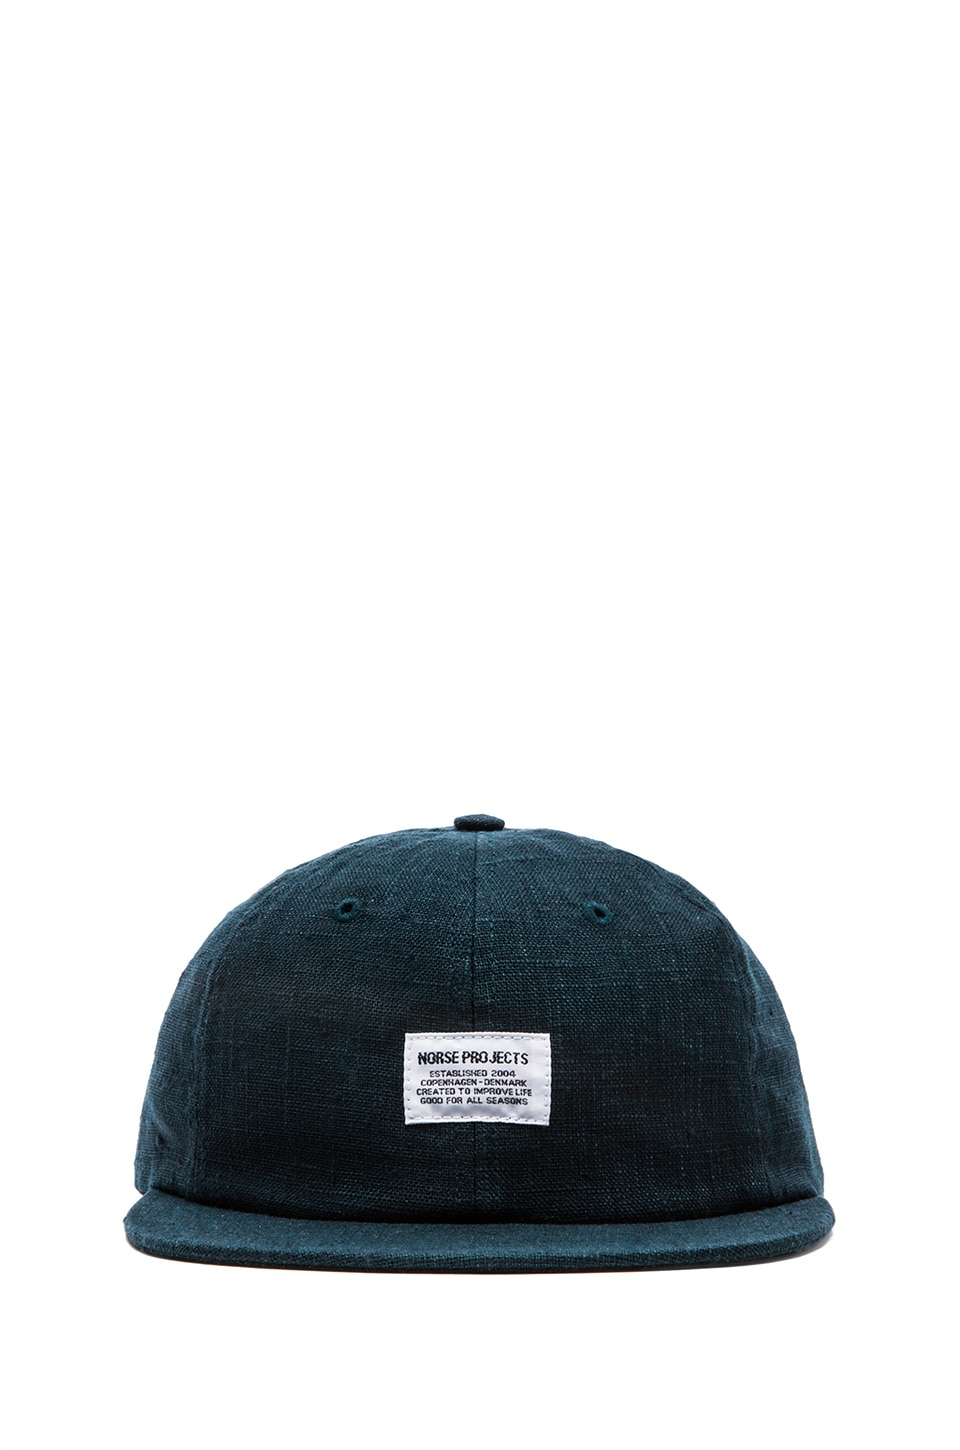 4f335a9ecdd Norse Projects Linen Flat Cap in Deep Teal